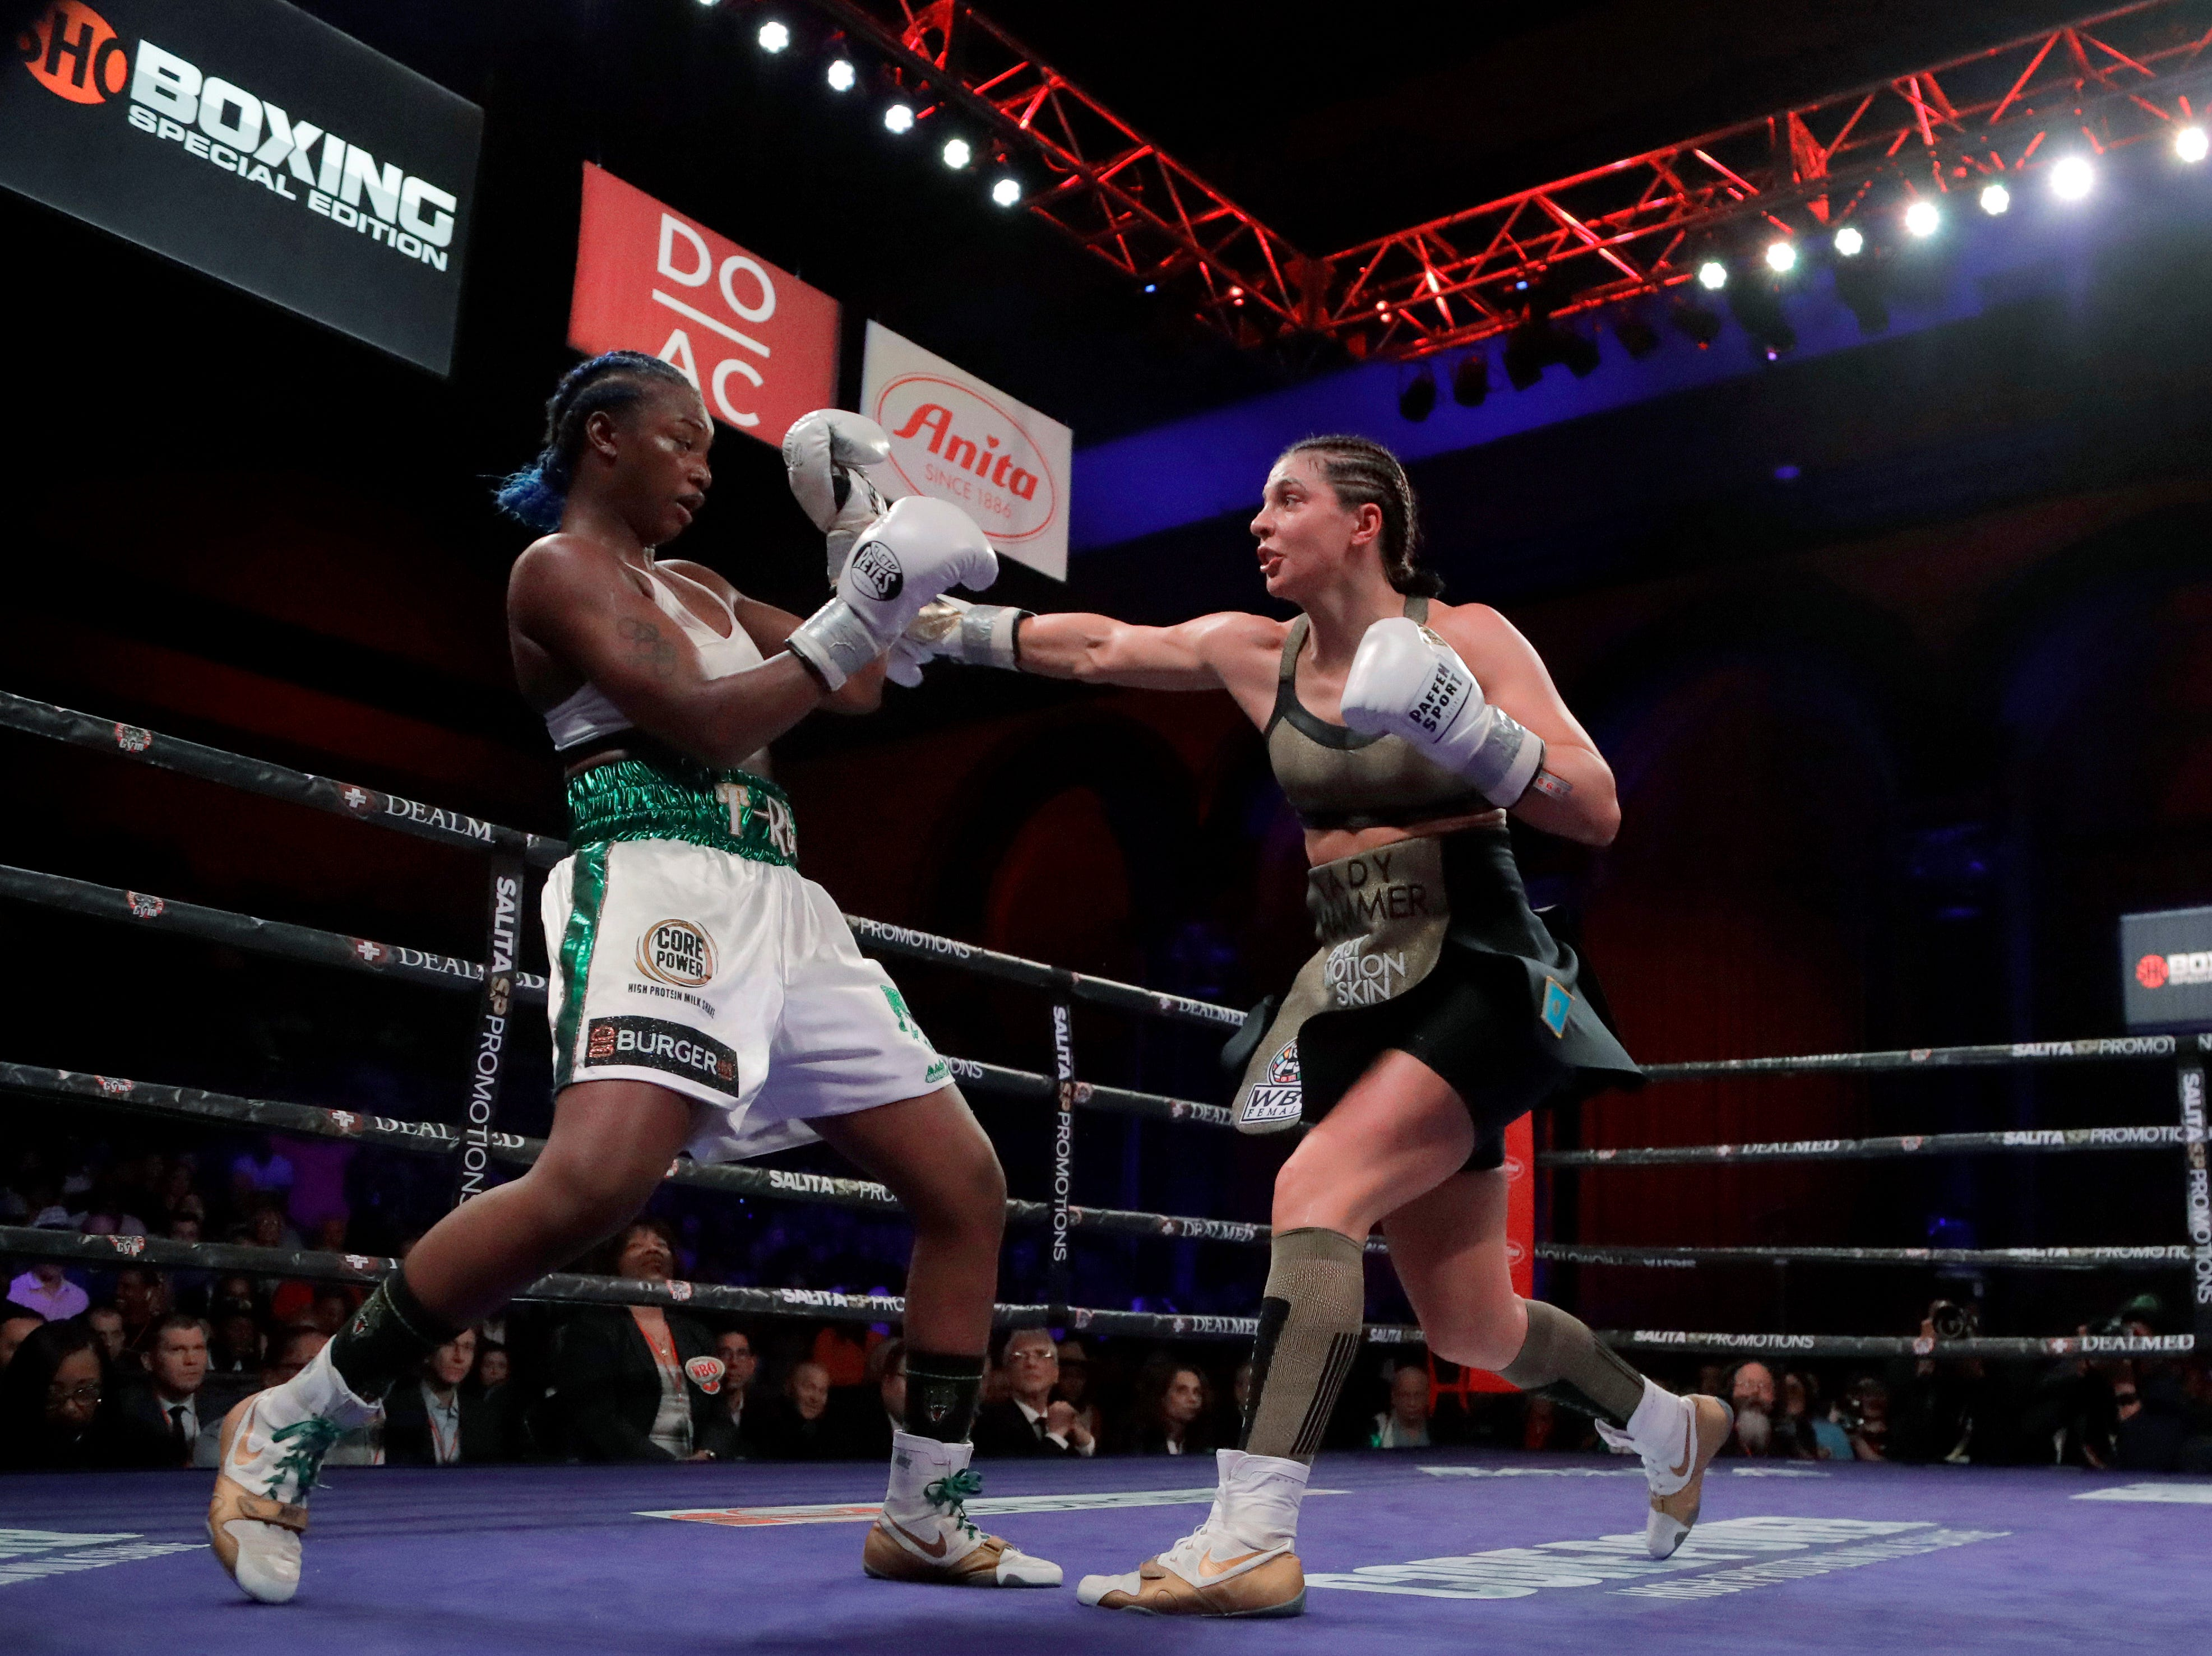 Christina Hammer, right, throws a right at Claressa Shields during the seventh round of the women's middleweight championship boxing bout Saturday, April 13, 2019, in Atlantic City, N.J. Shields won by unanimous decision.